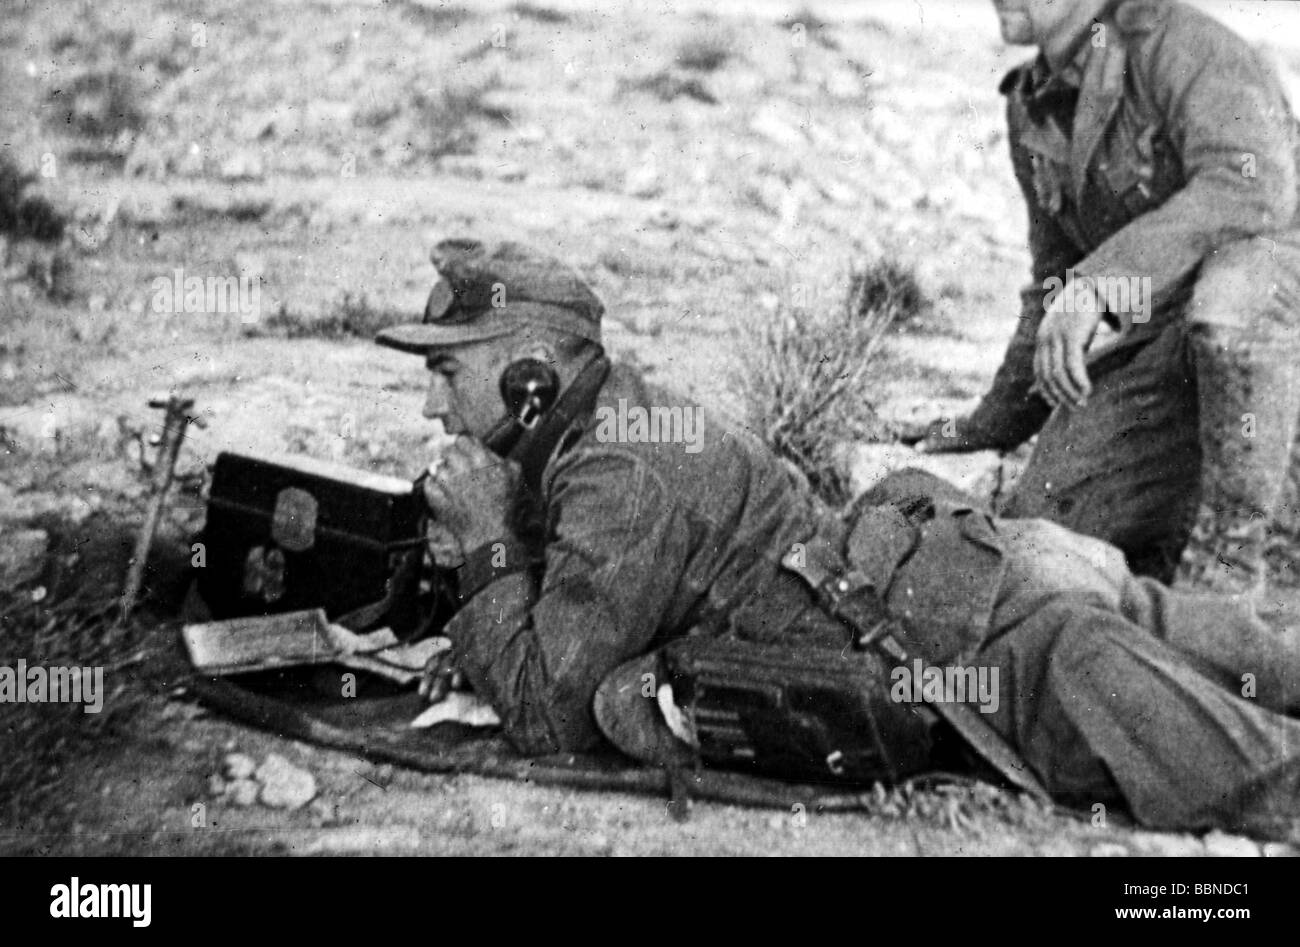 events, Second World War / WWII, North Africa, soldiers of the German Afrikakorps with field telephone FF33, 1941 - Stock Image